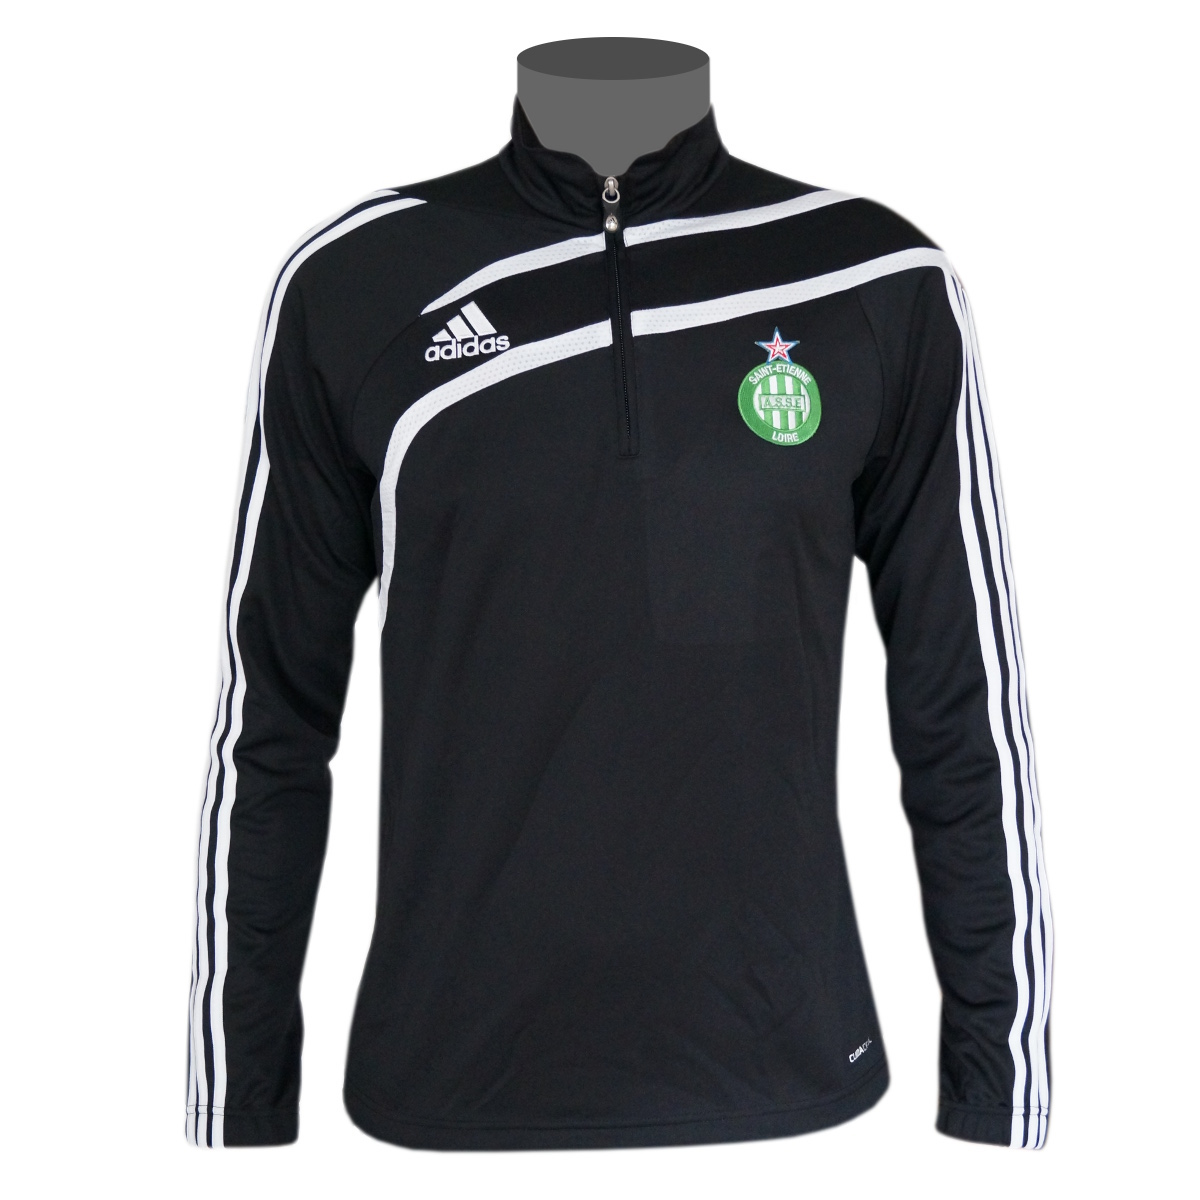 adidas pullover herren grau about adidas deutschland. Black Bedroom Furniture Sets. Home Design Ideas